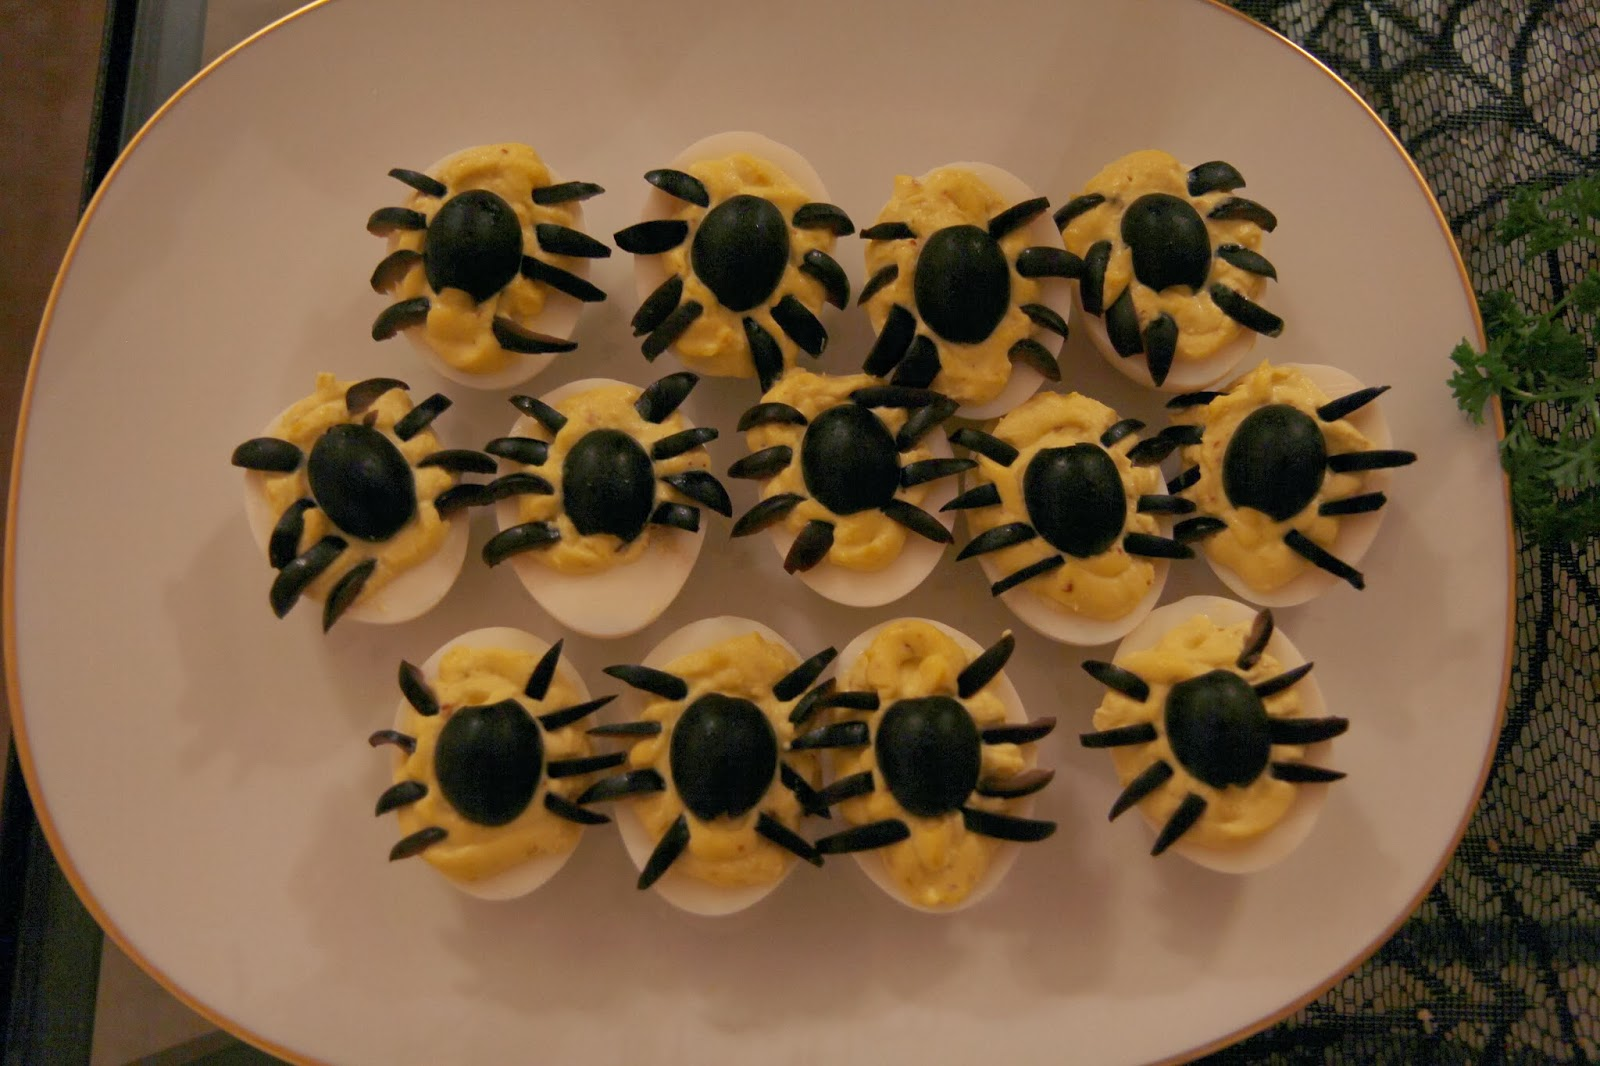 Deviled Eggs with Olive Spiders - Spooky Glam Halloween Party